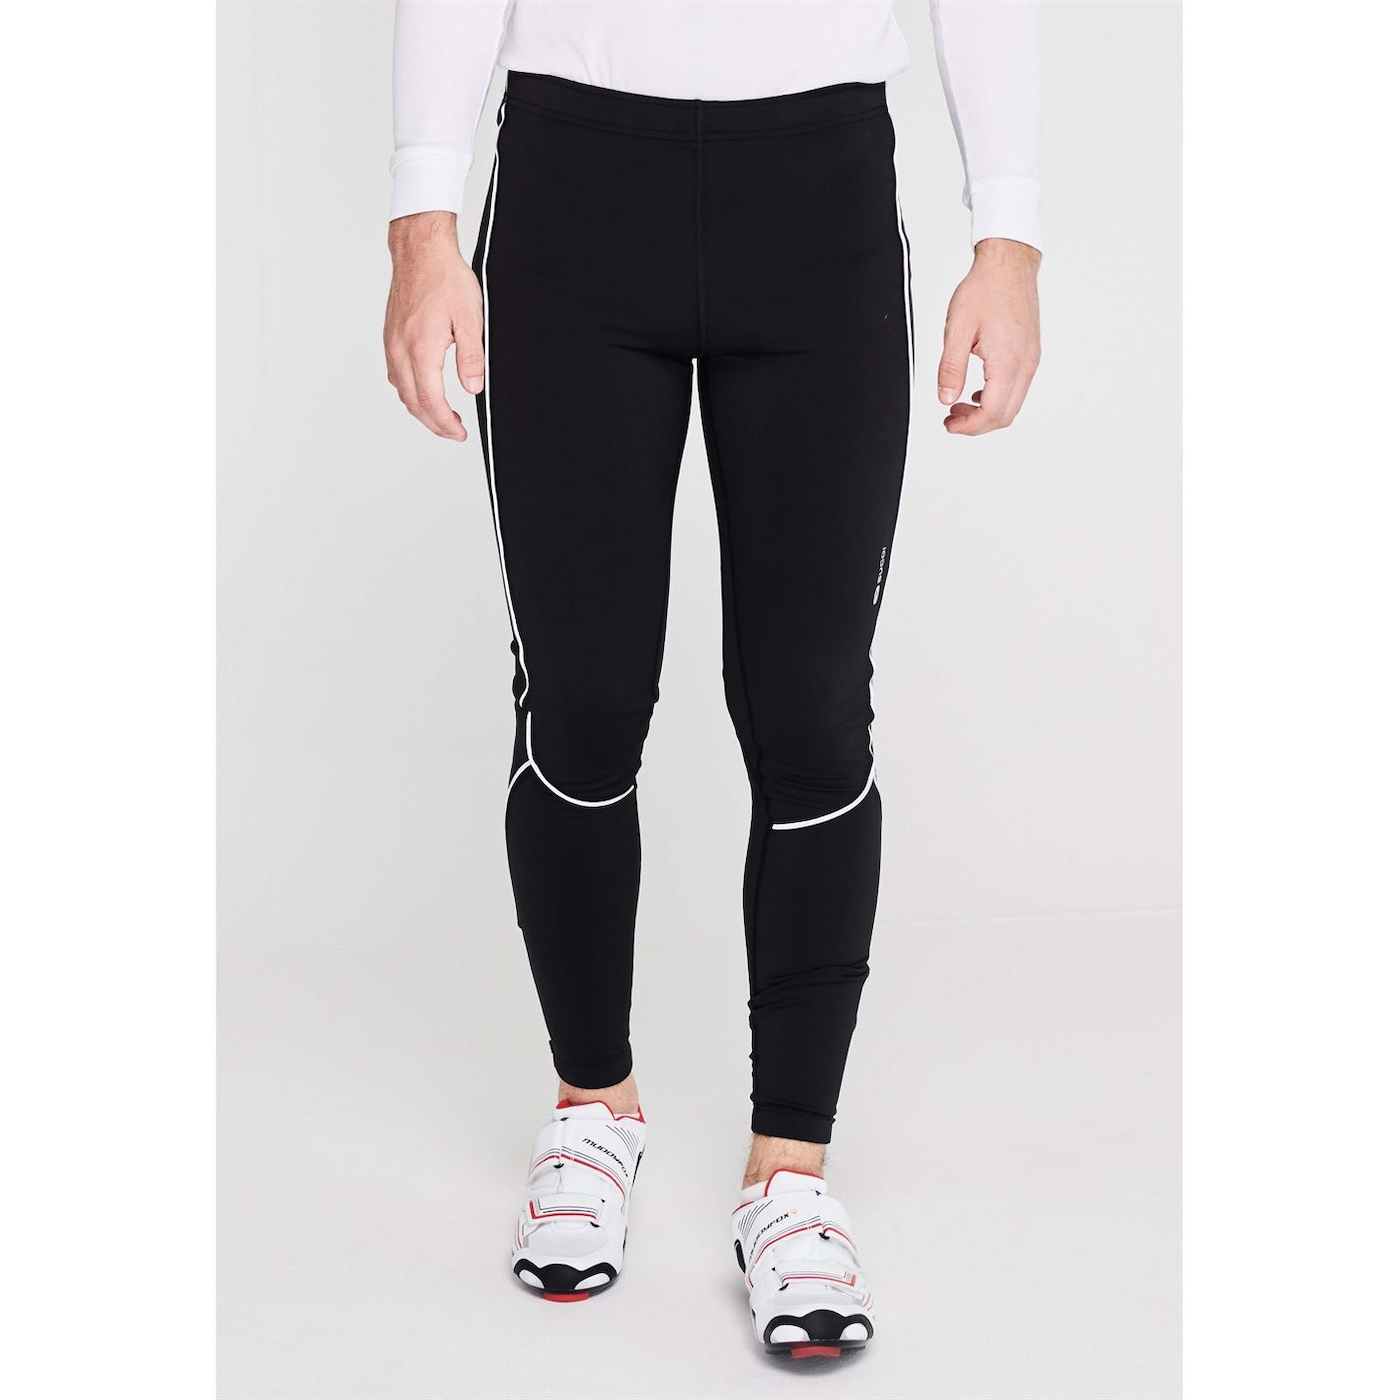 Sugoi Midzero Zap Tights Mens